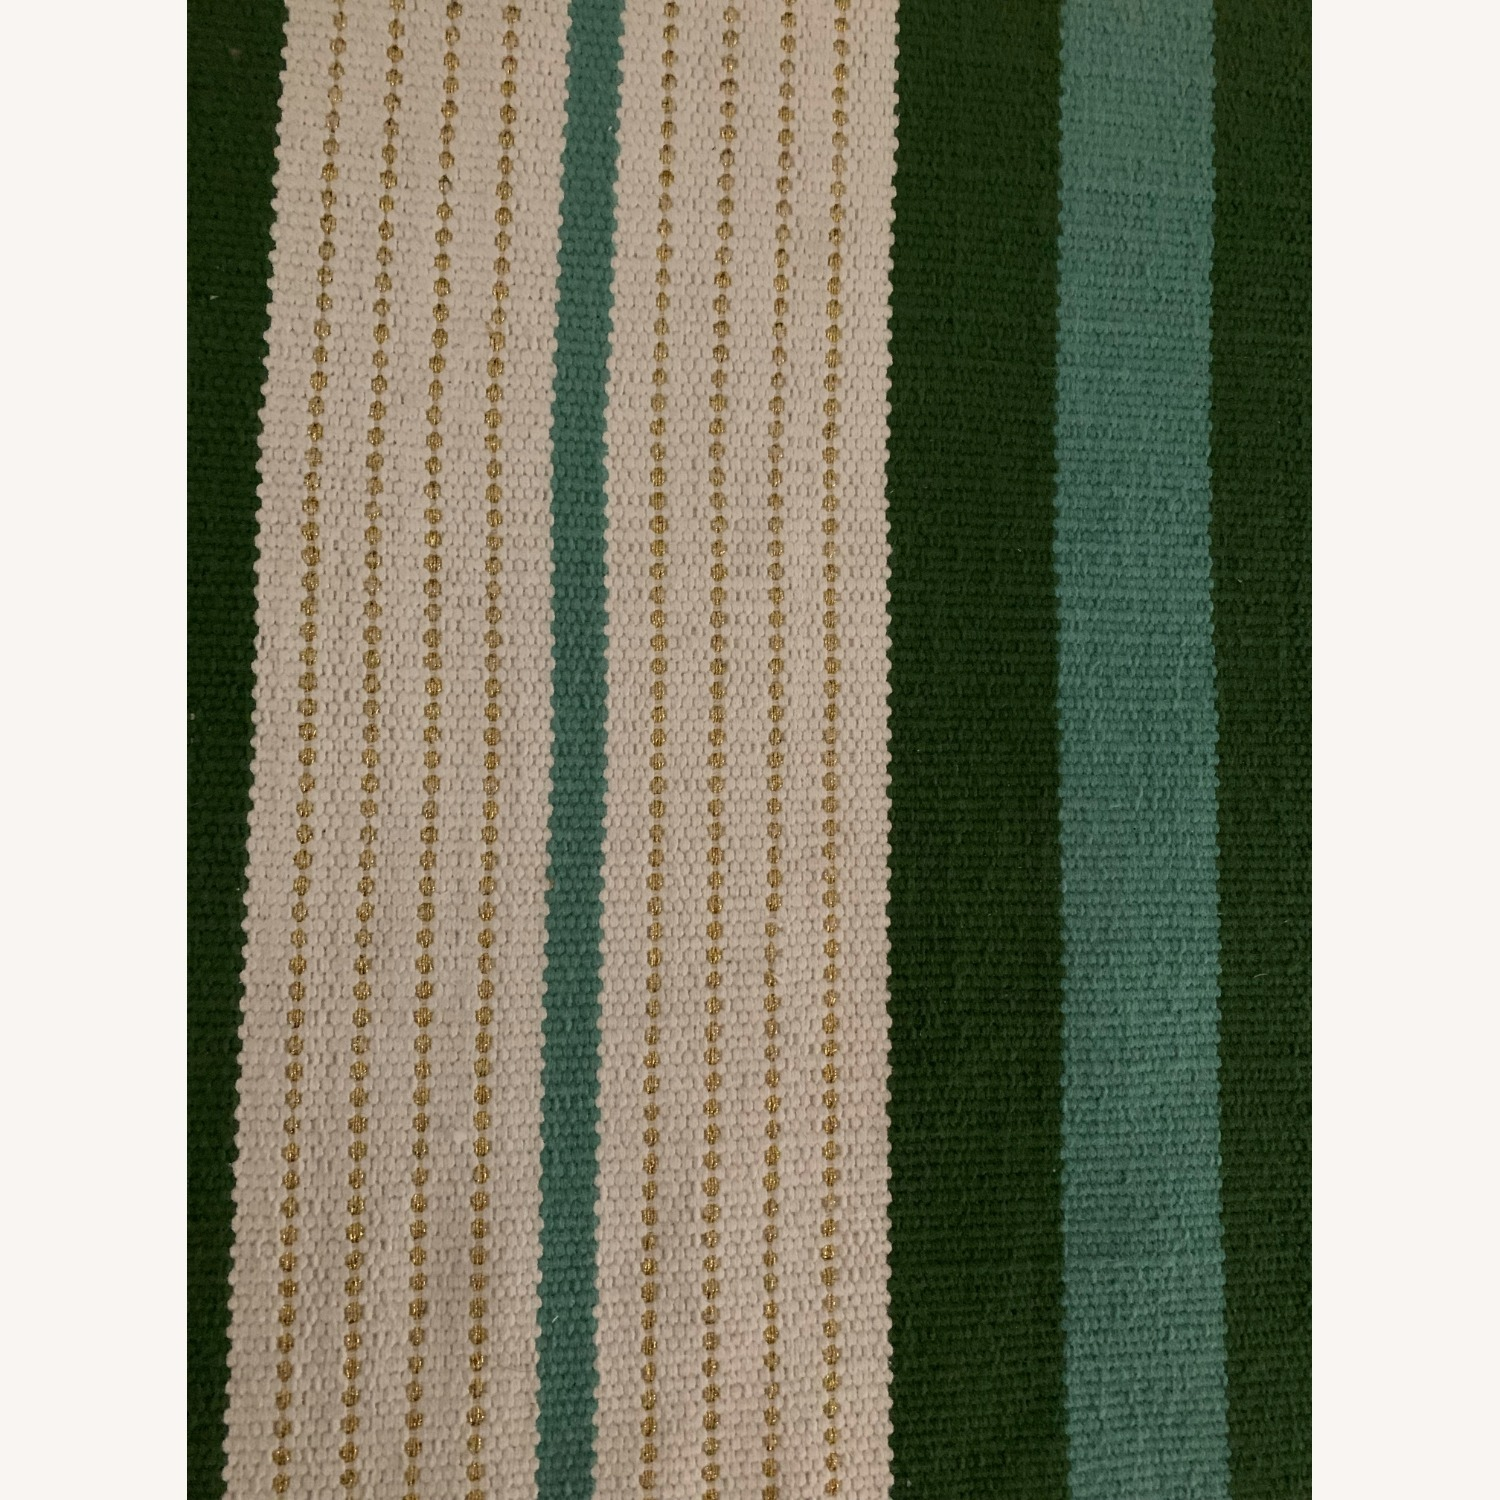 Target Teal Green Striped Woven Rug 7 x 10 - image-3